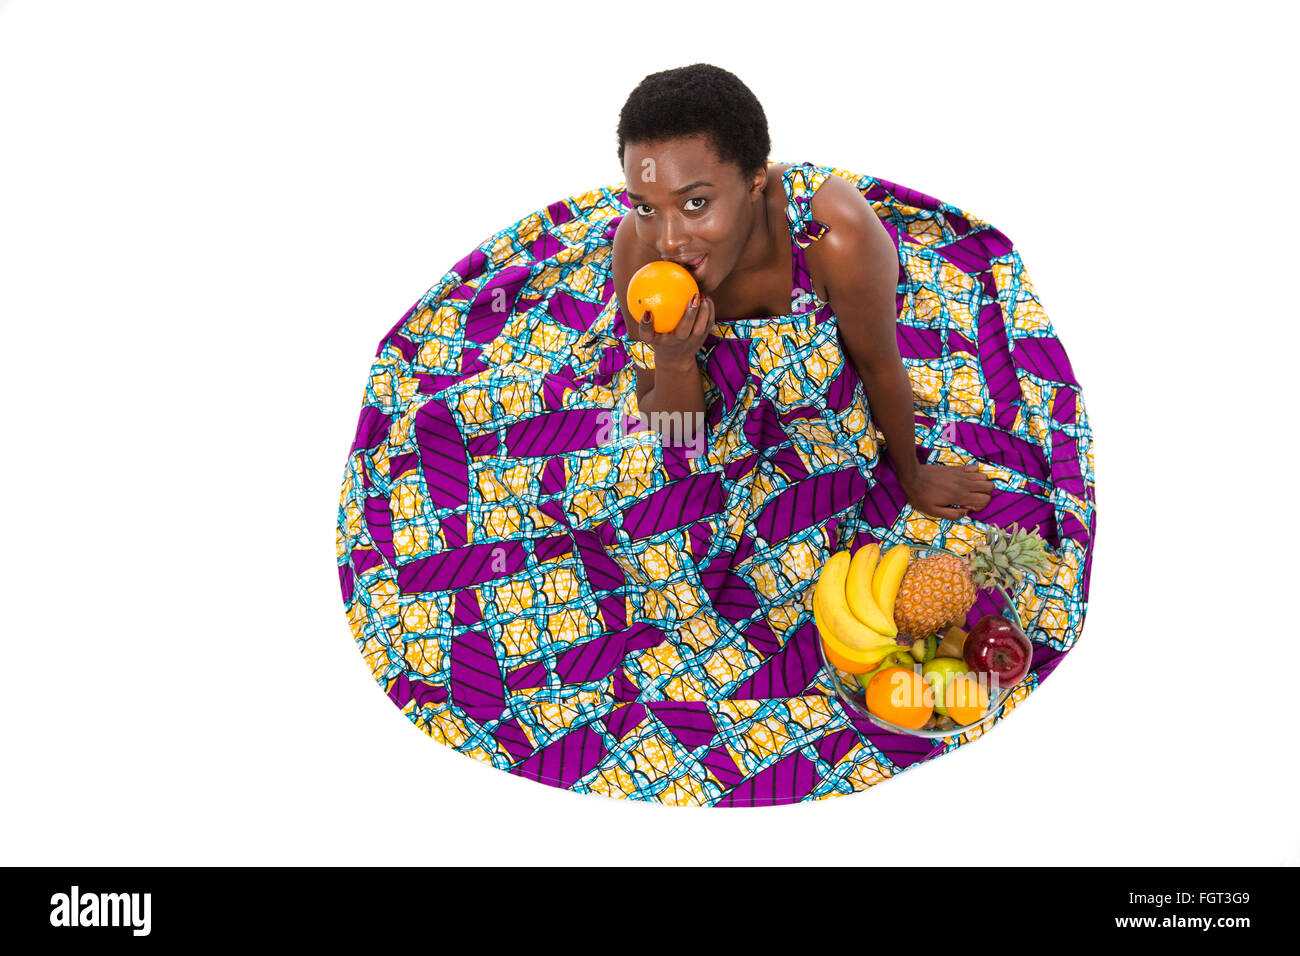 Top view of happy lovely african american young woman in colorful sundress sitting and eating orange over white - Stock Image